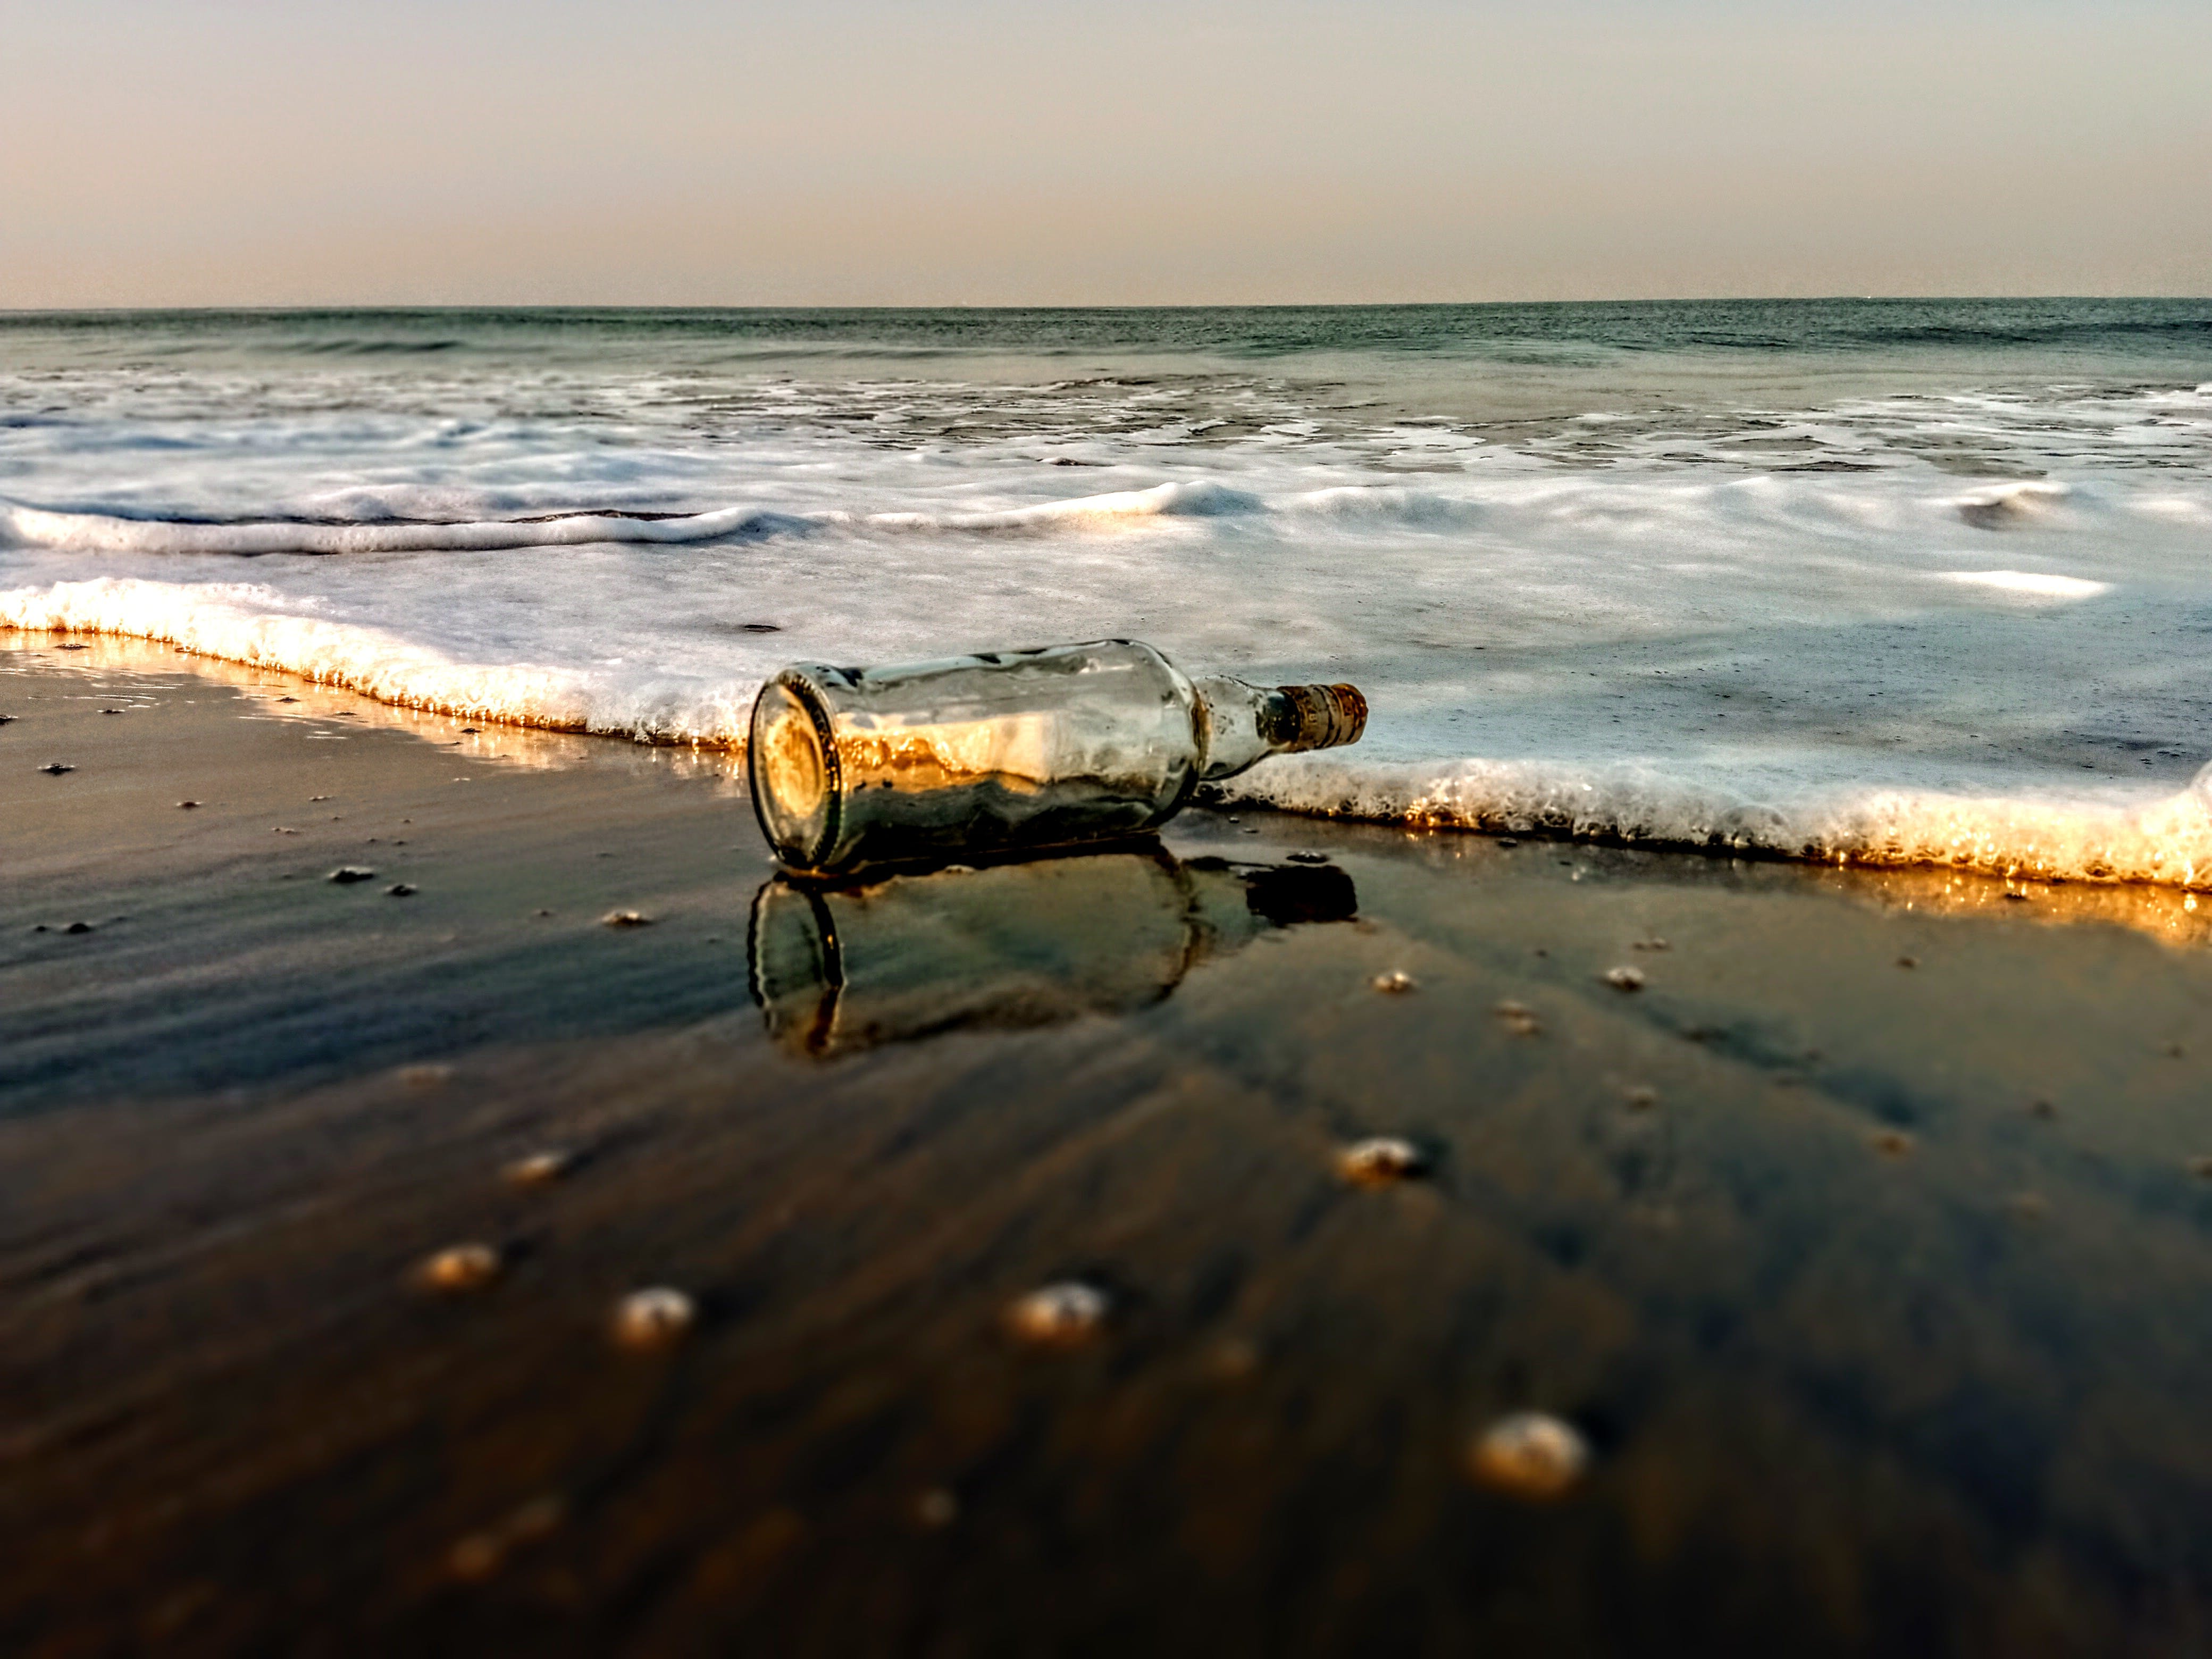 Free stock photo of beach, beer bottle, reflection, waves